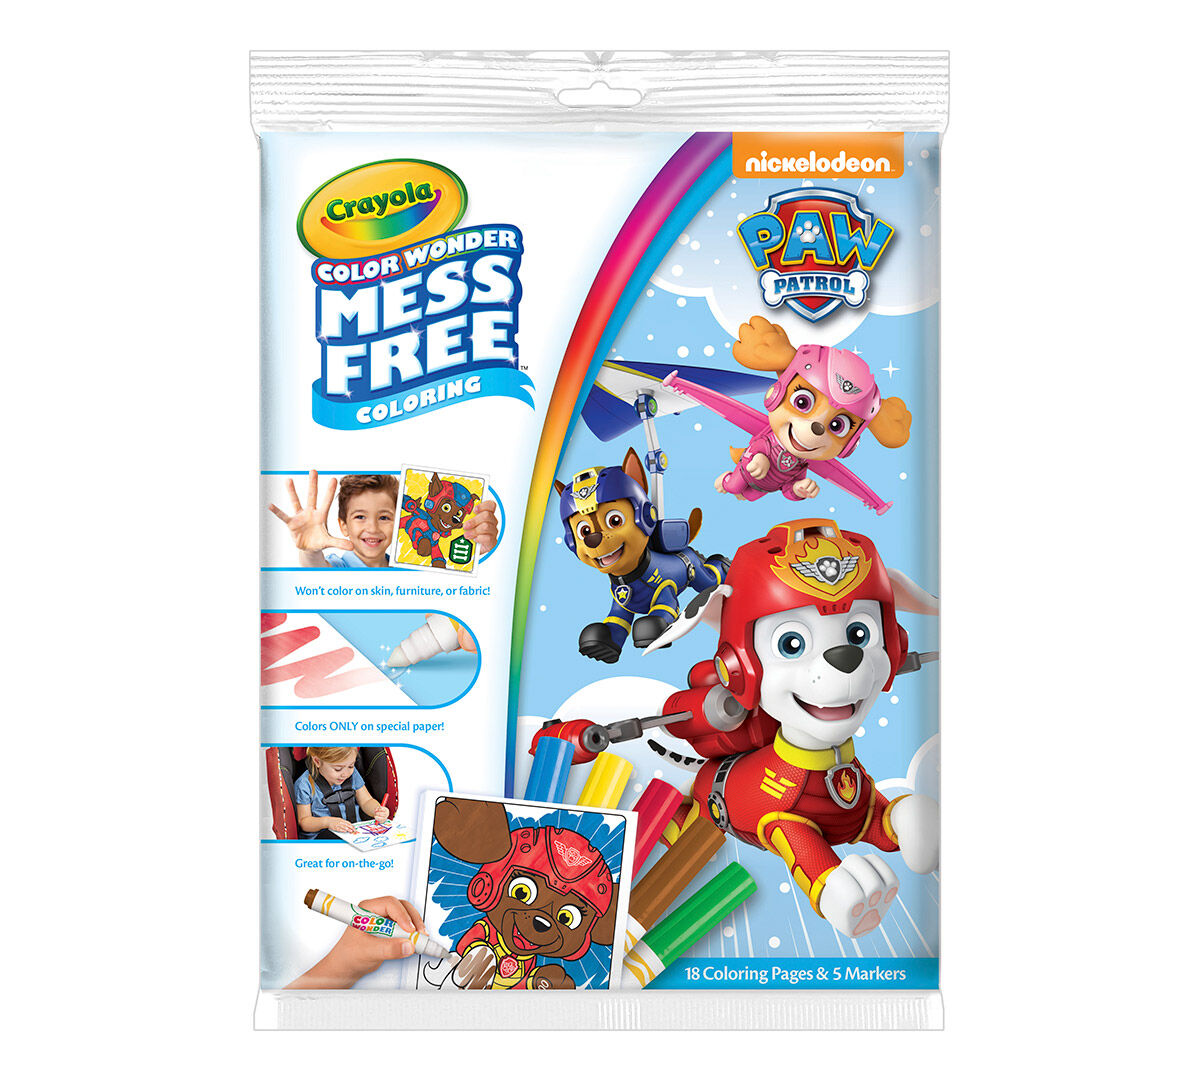 Color Wonder Mess Free Coloring Pad & Markers, Paw Patrol